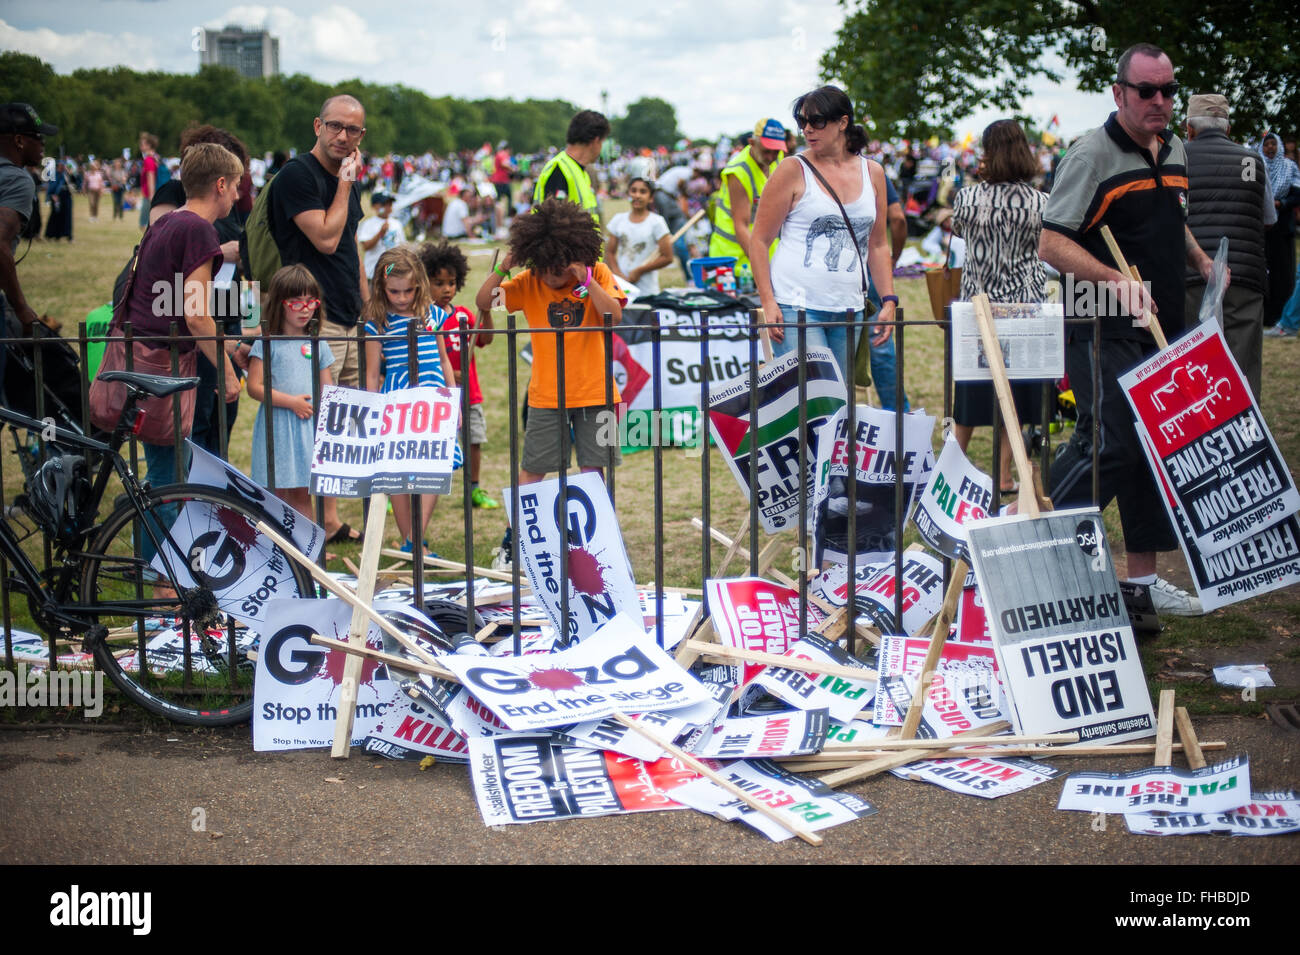 Pro-Palestinian placards and families, rally for Gaza, London, Aug 9, 2014 - Stock Image